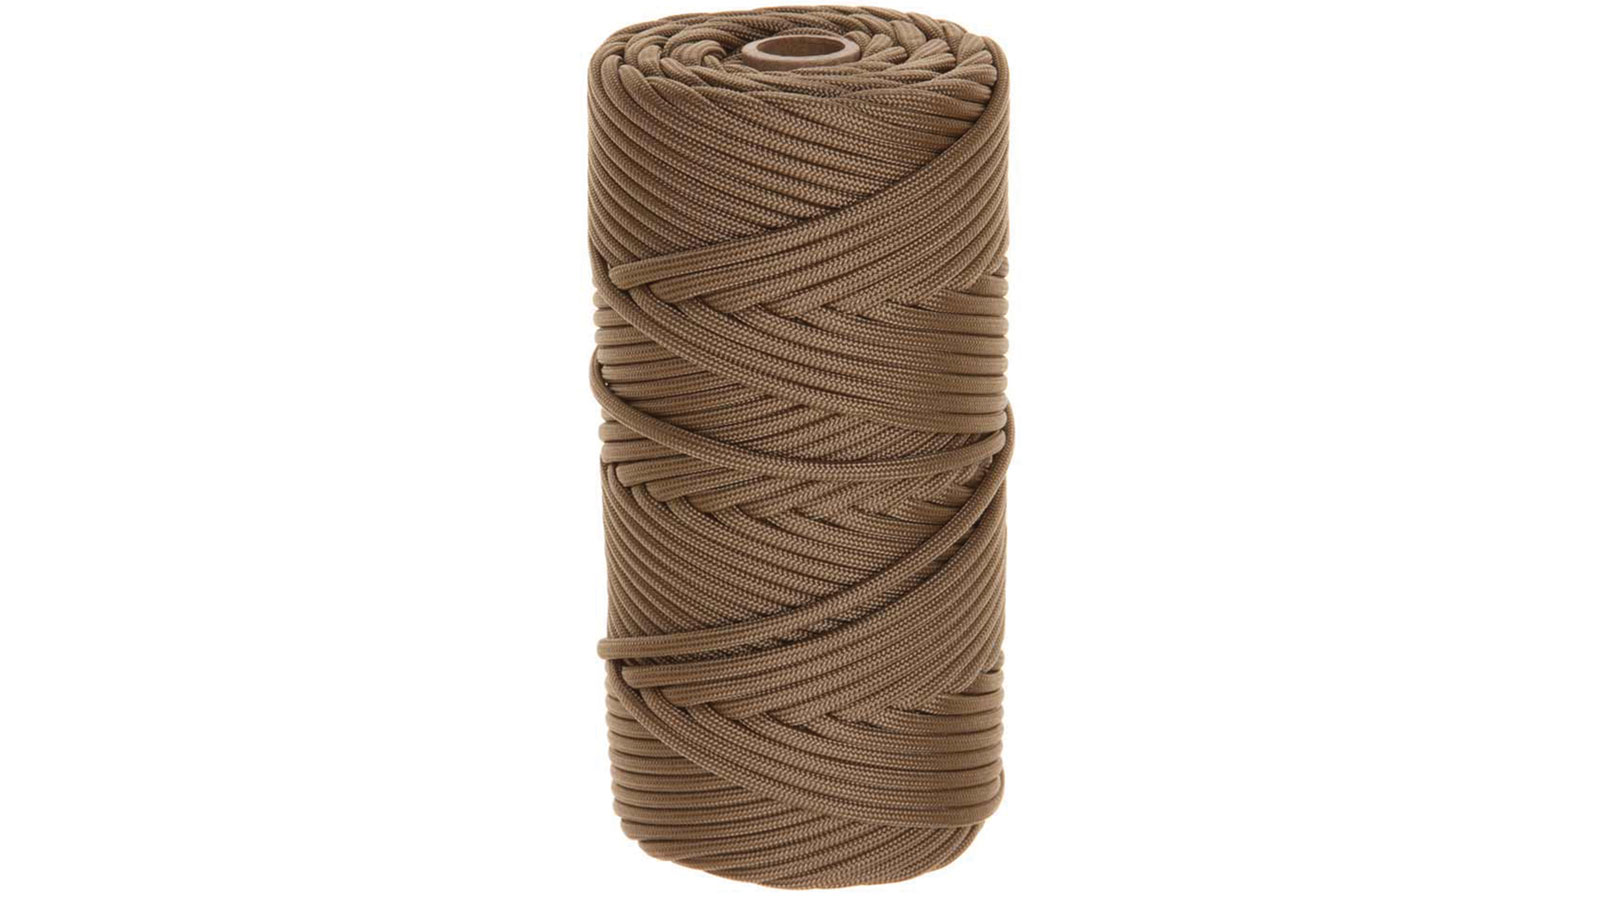 Tac Shield COYOTE 200FT.550 CORD 7 STR